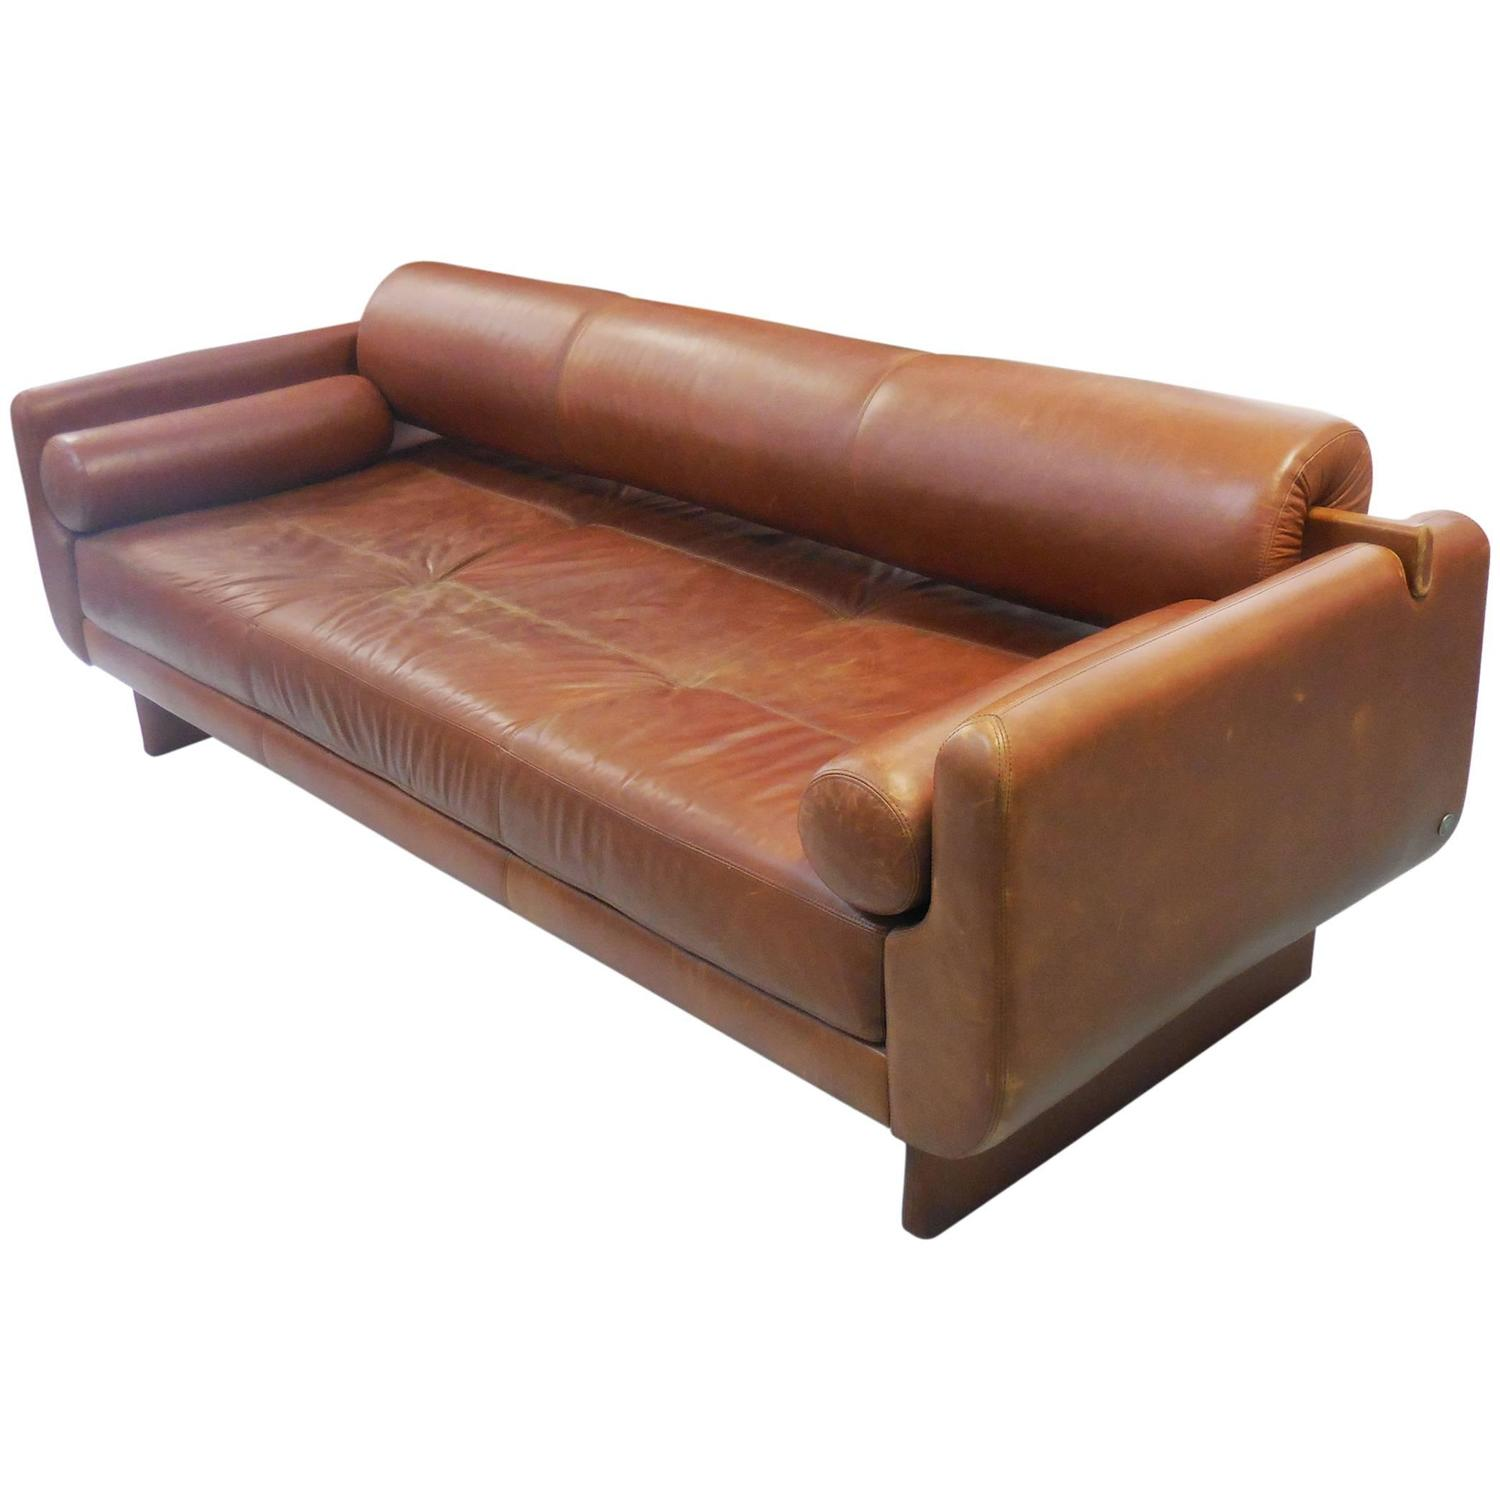 Modern Sculptural Leather Sofa Daybed at 1stdibs